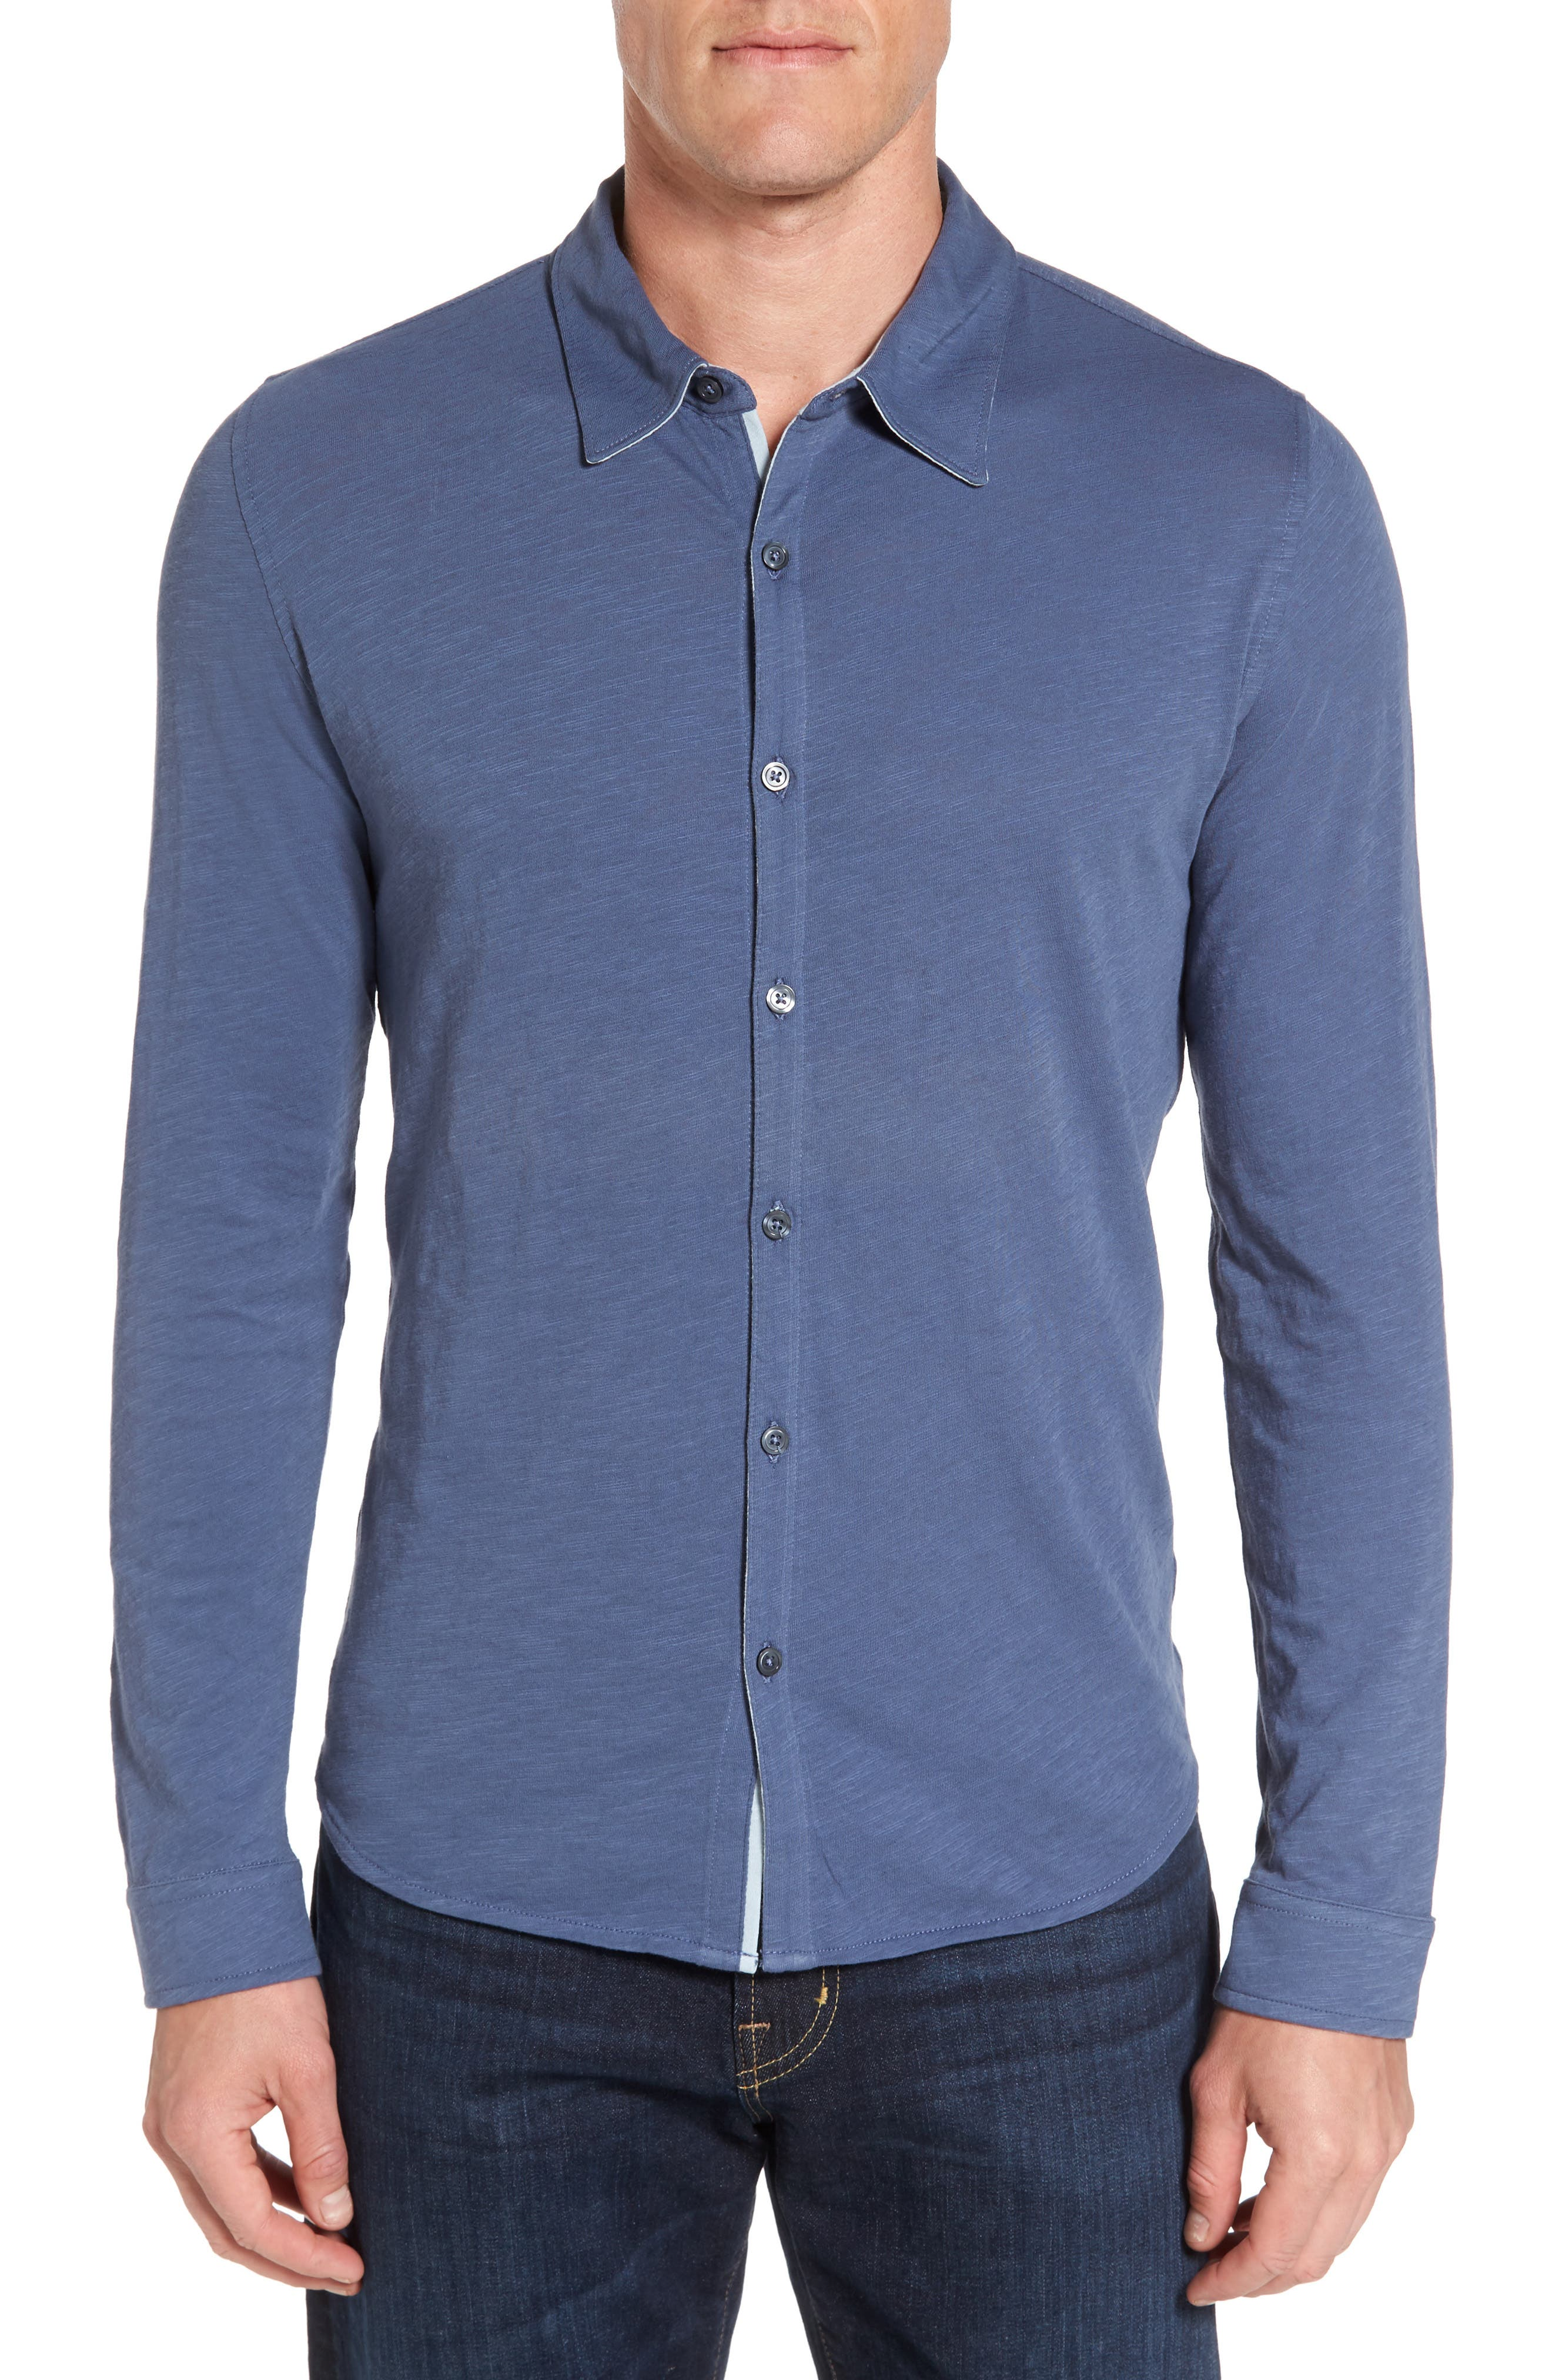 Main Image - Zachary Prell Camara Trim Fit Knit Sport Shirt